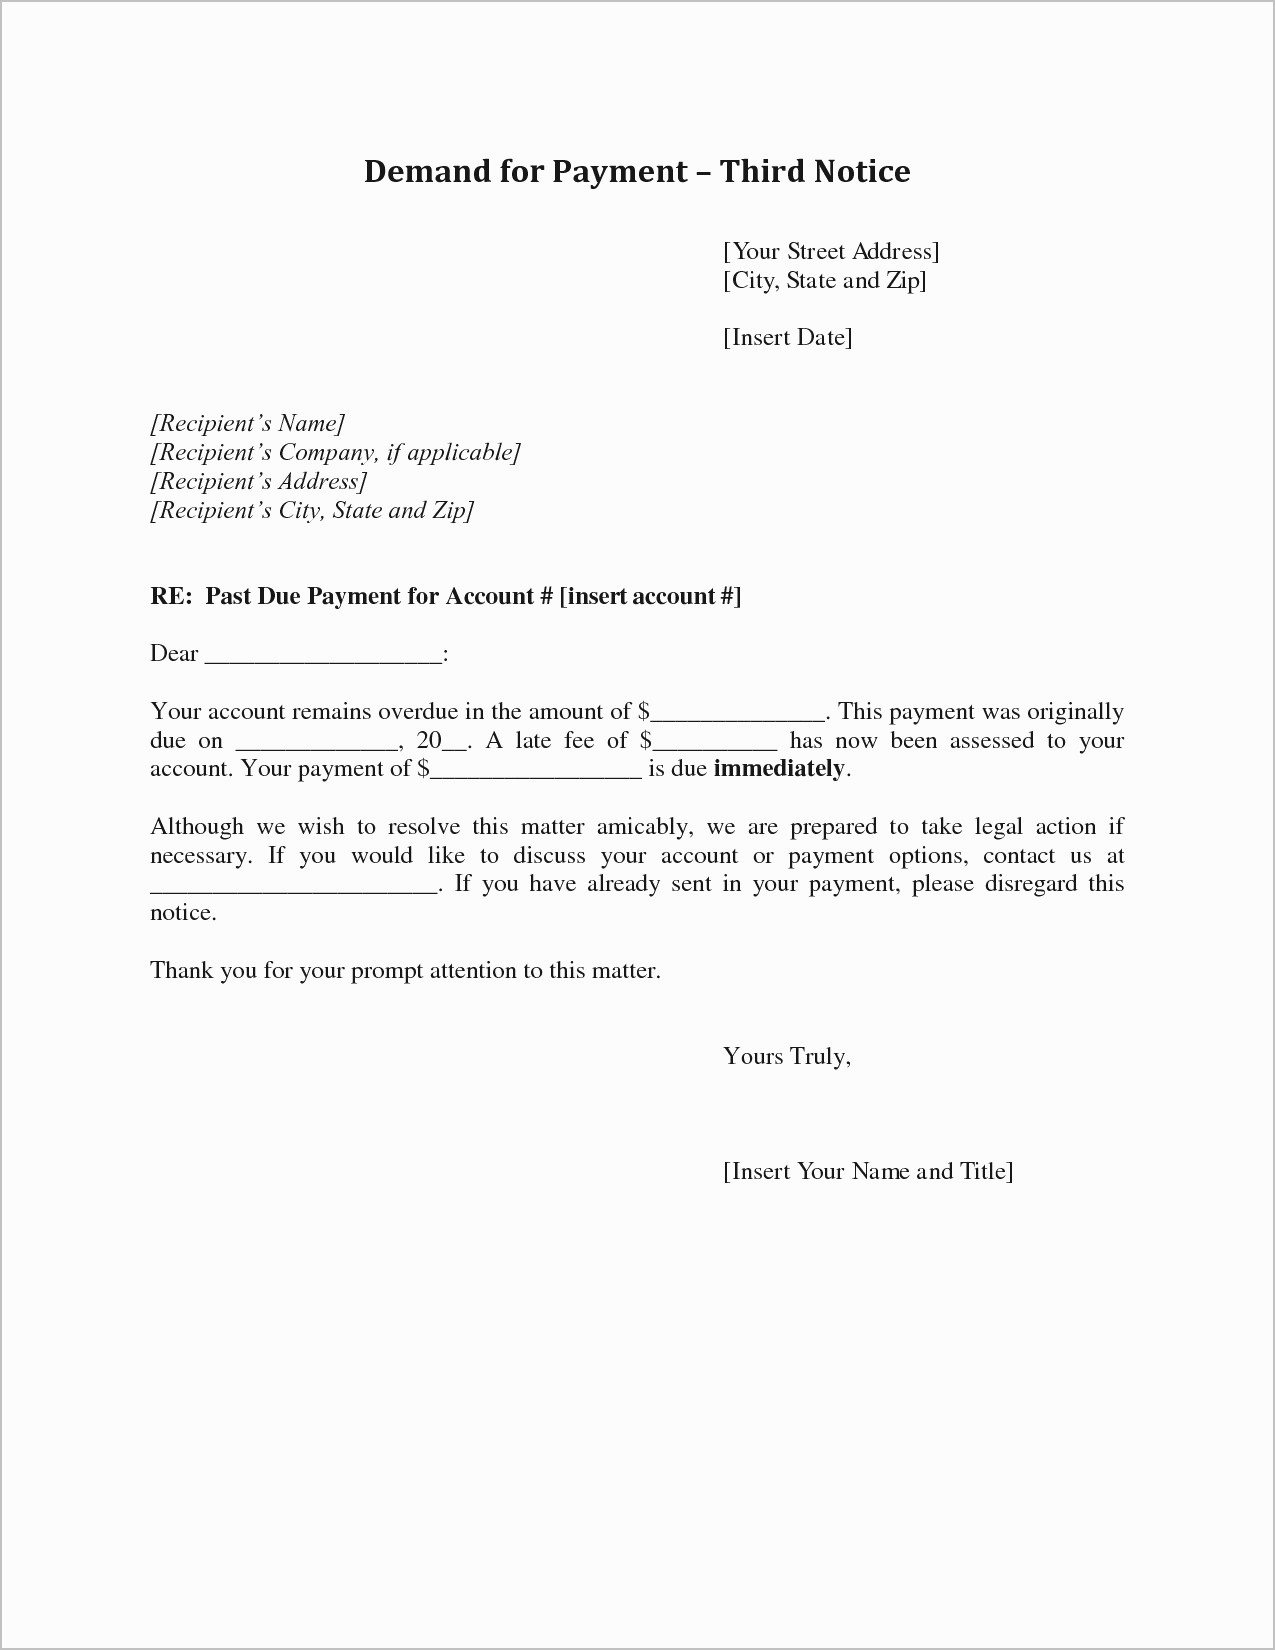 Past Due Rent Letter Template - Sample Demand Letter for Unpaid Rent Awesome Past Due Letter